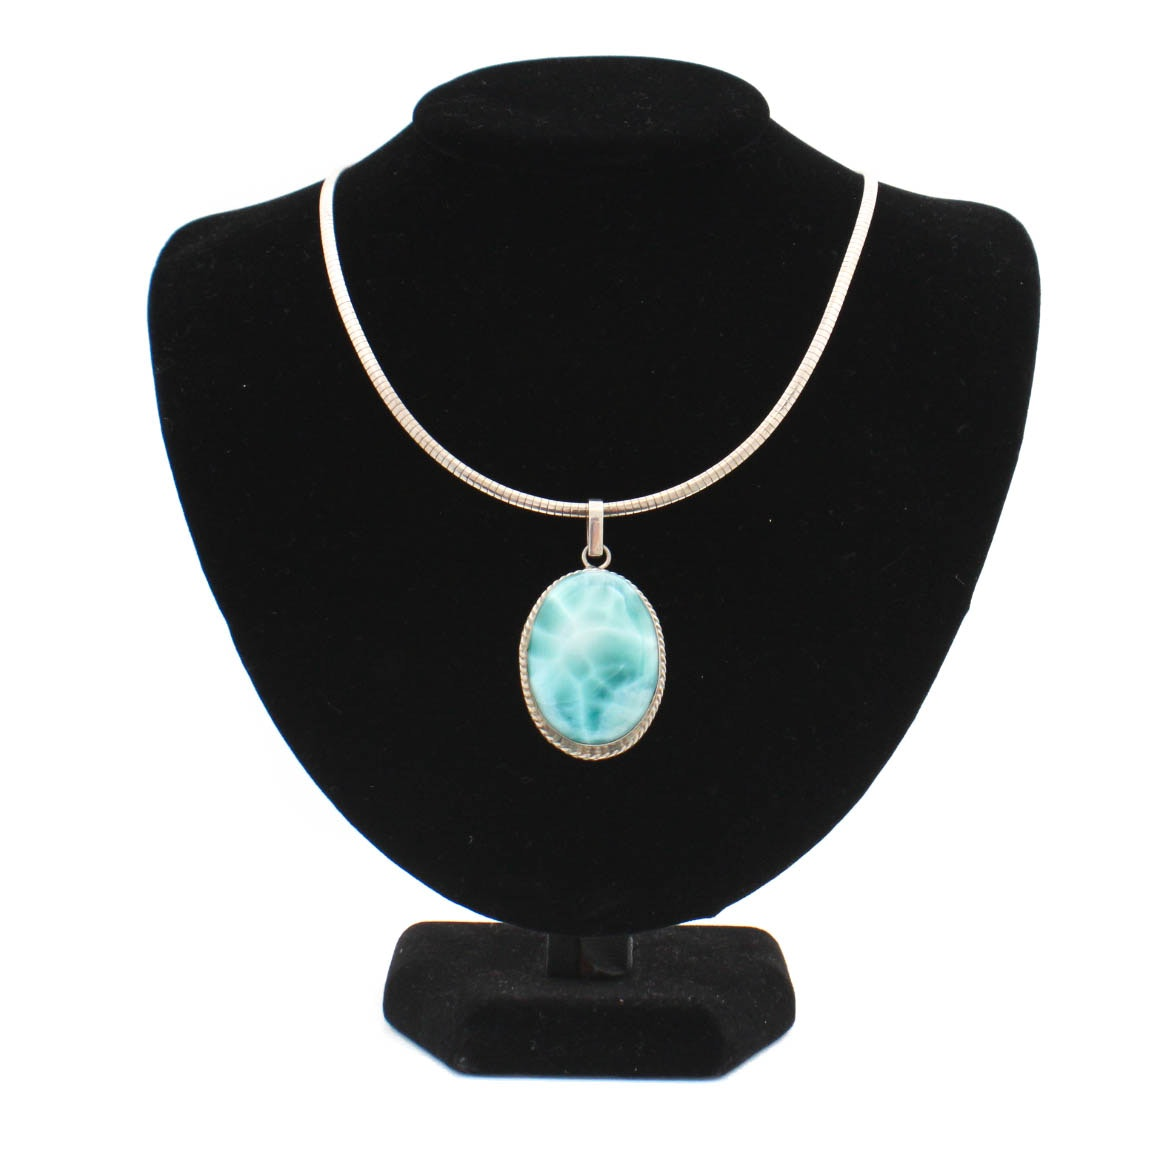 Sterling Silver Herringbone Necklace With Larimar Pendant